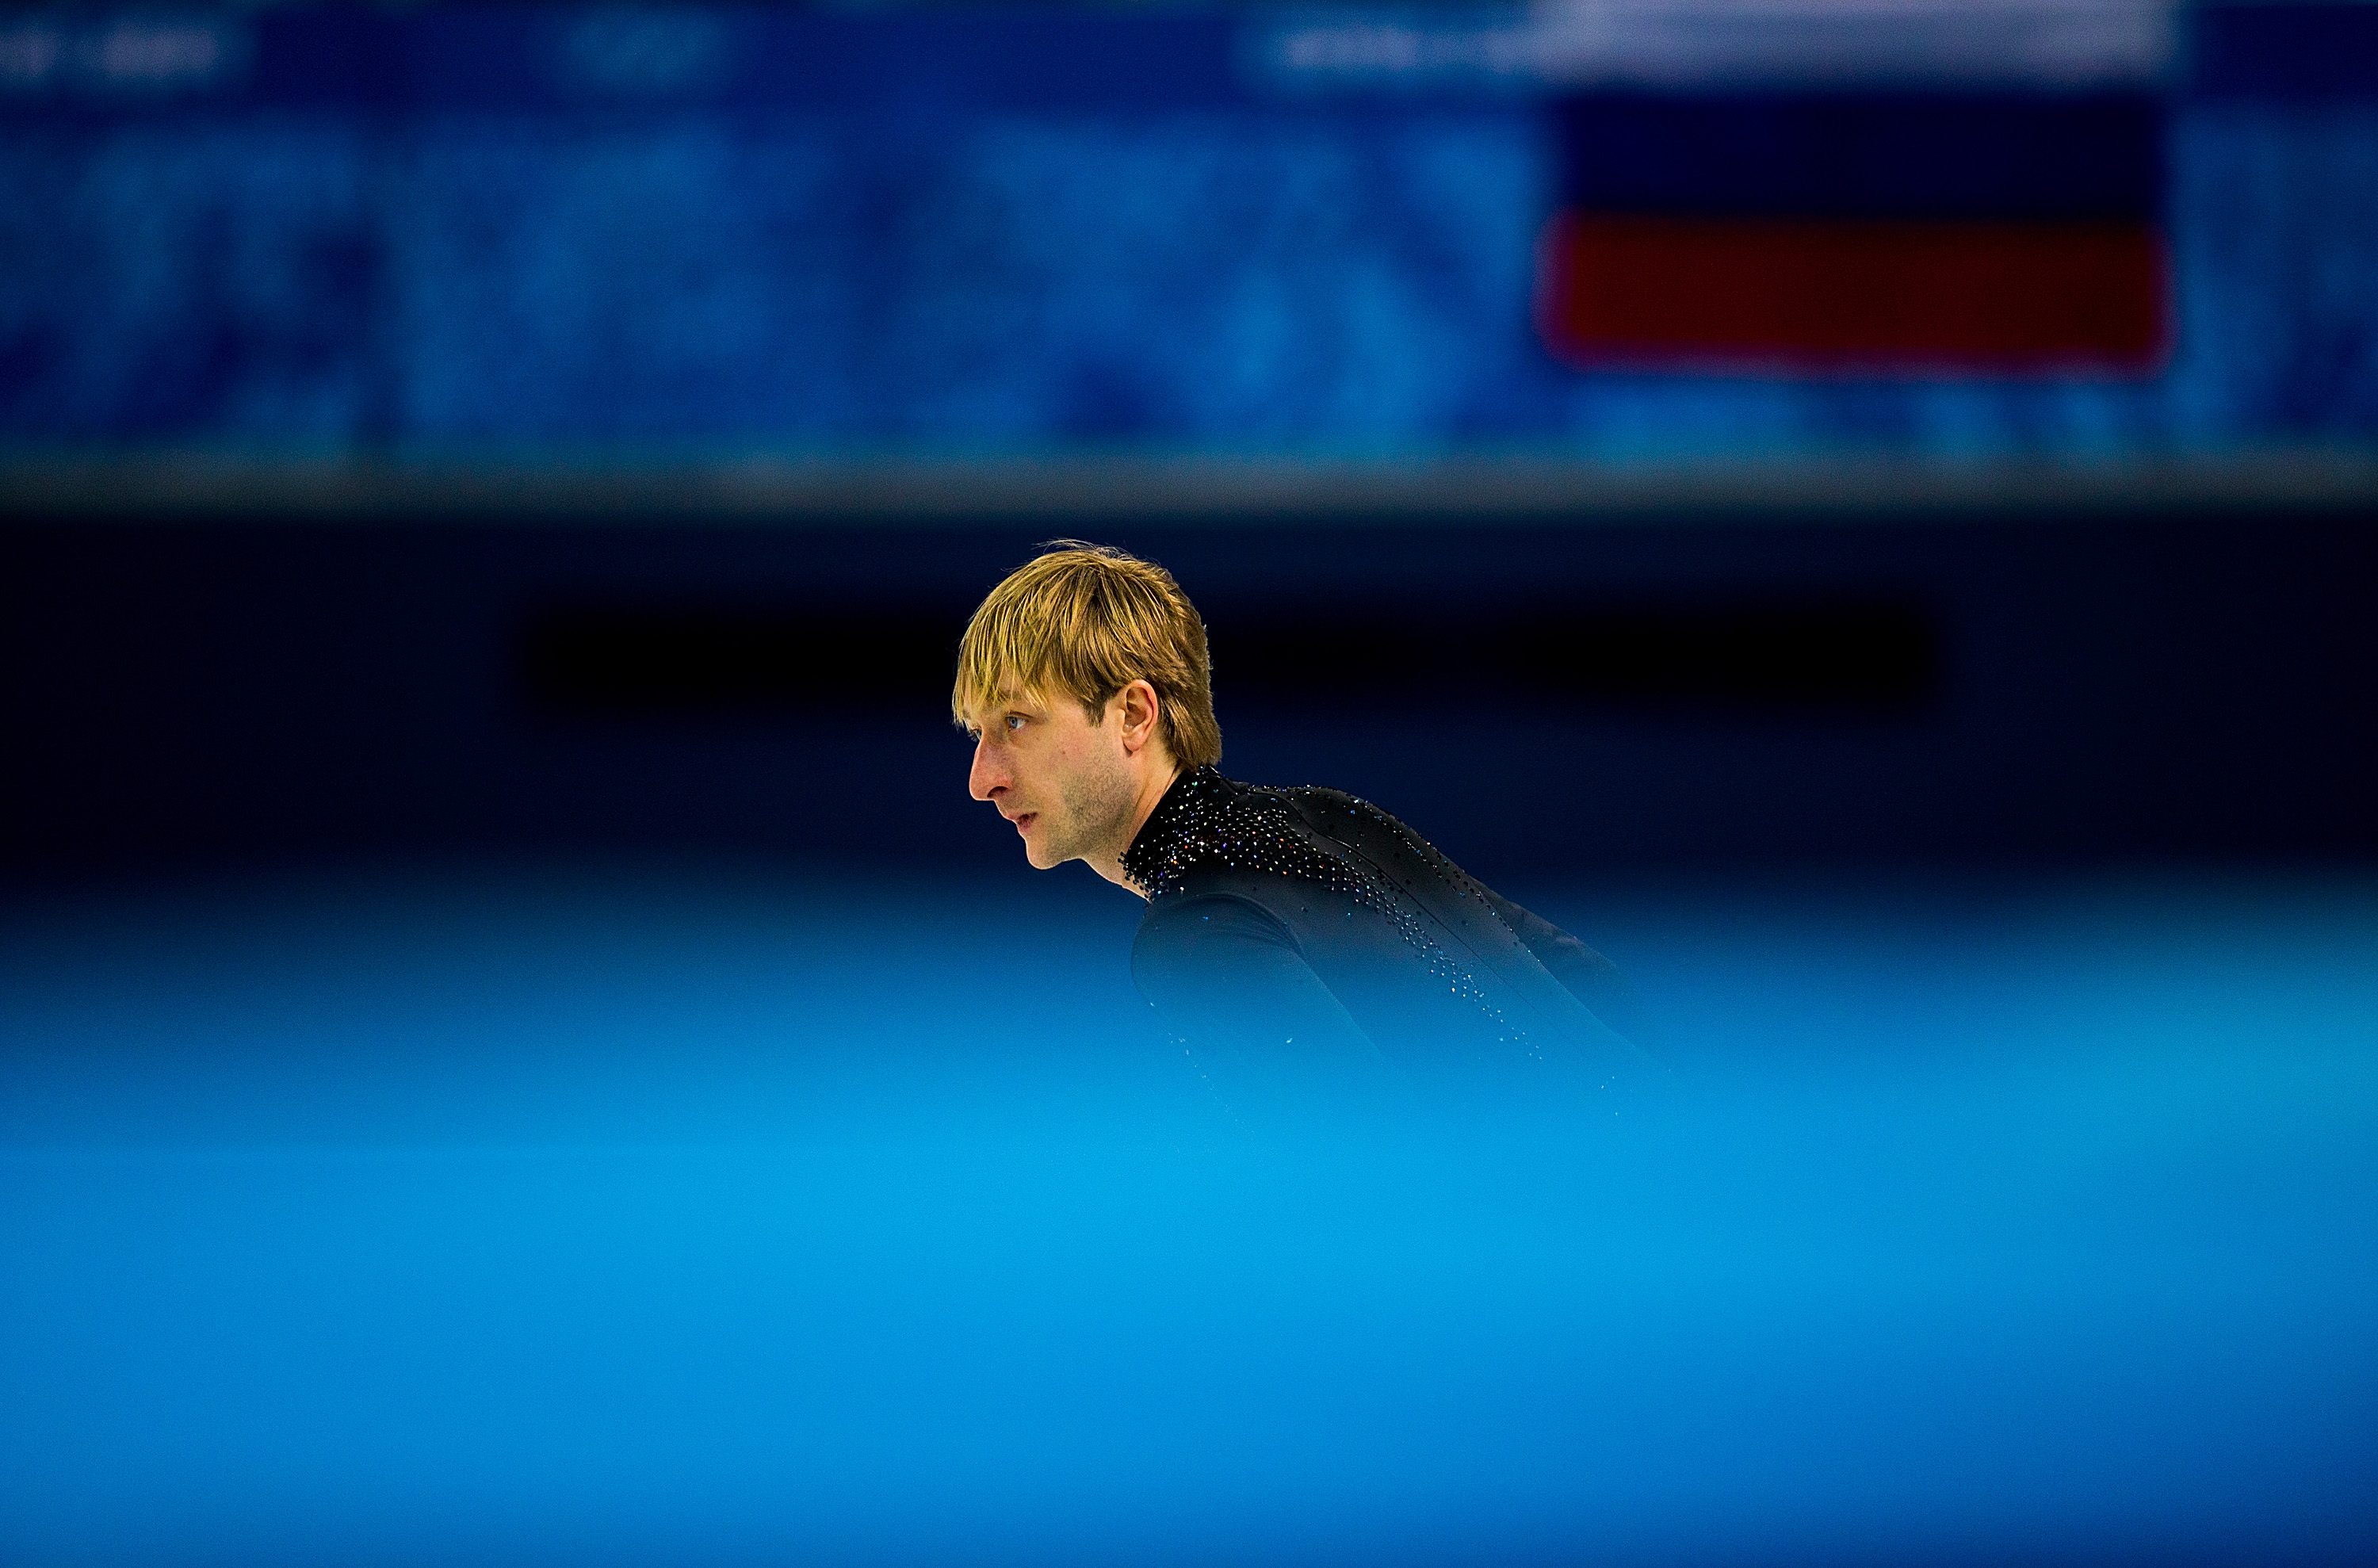 Evgeny Plyushchenko of Russia is seen at at a warm up during the Men's Figure Skating Short Program.